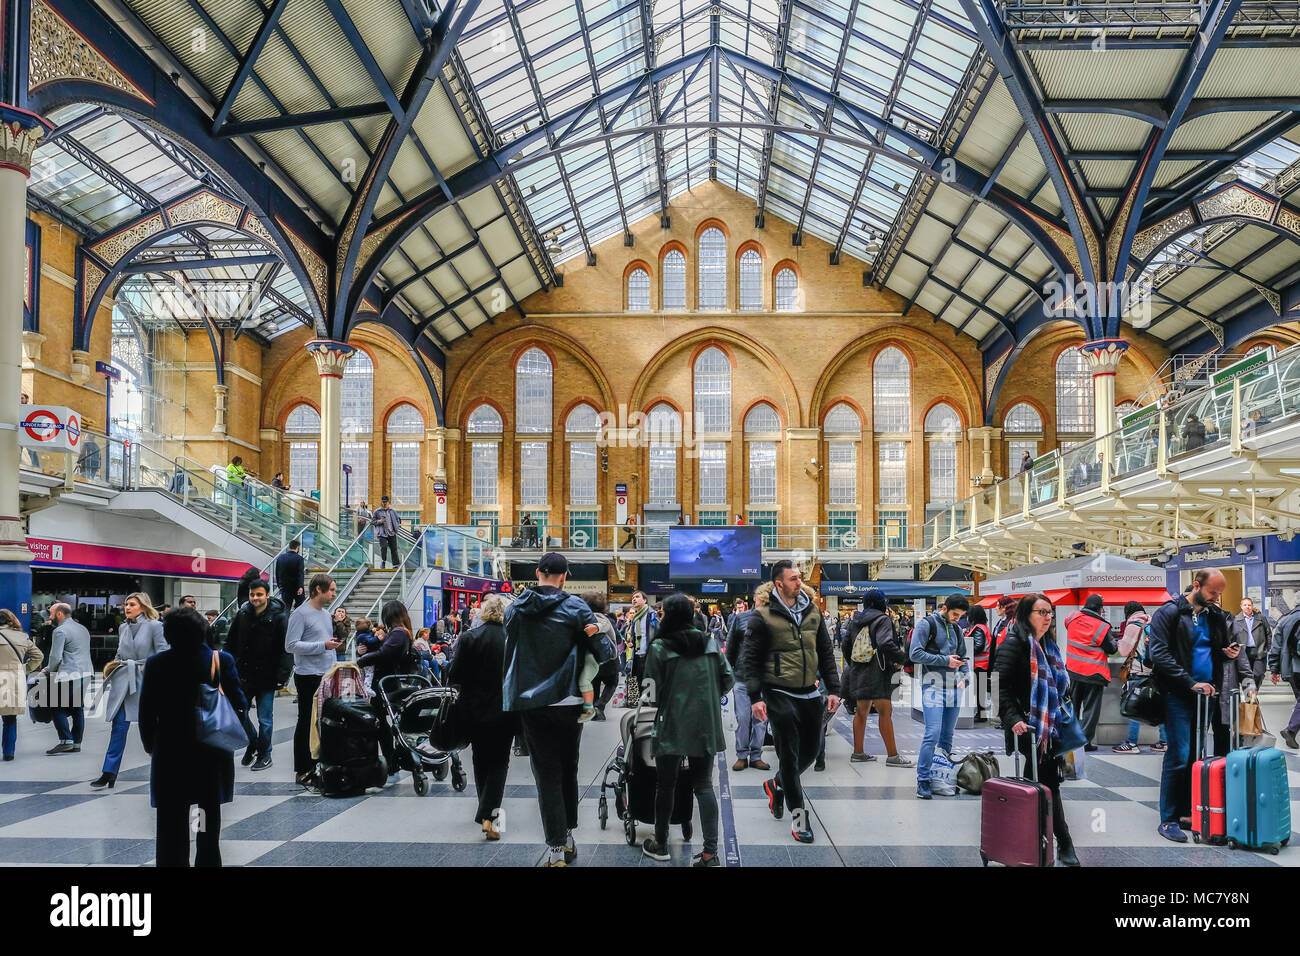 Liverpool Street, London, UK - April 6, 2018: wide angle shot of a busy mainline station with lots of passengers. Well lit view of the architecture. - Stock Image